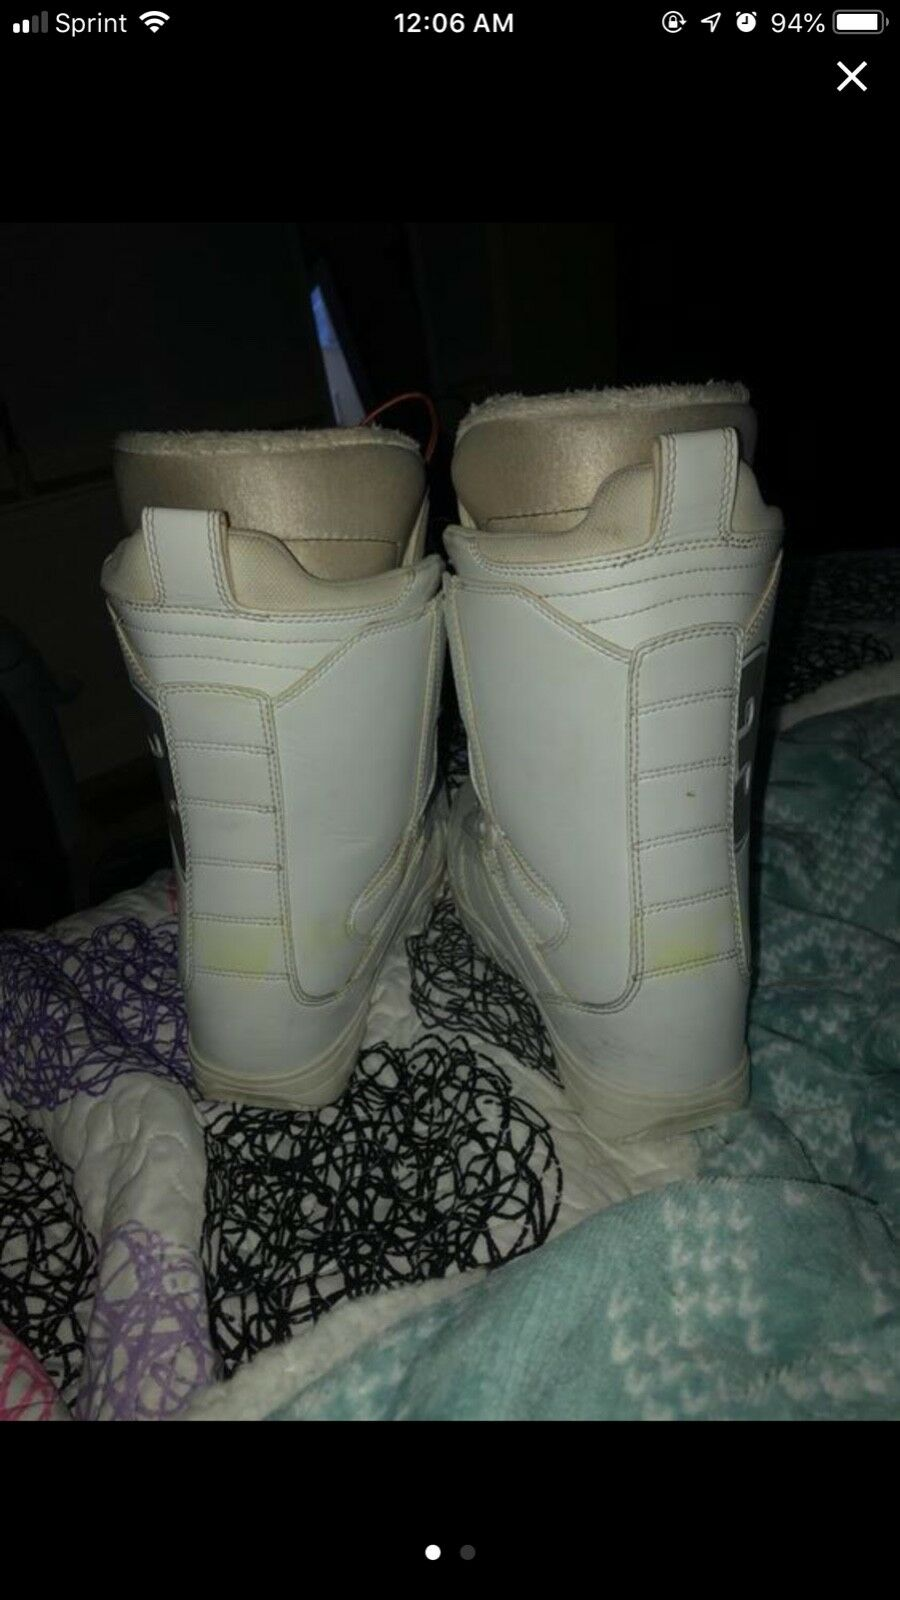 Ride snowboard, Lamar bindings, Thirty two boots. Board is white bluee.